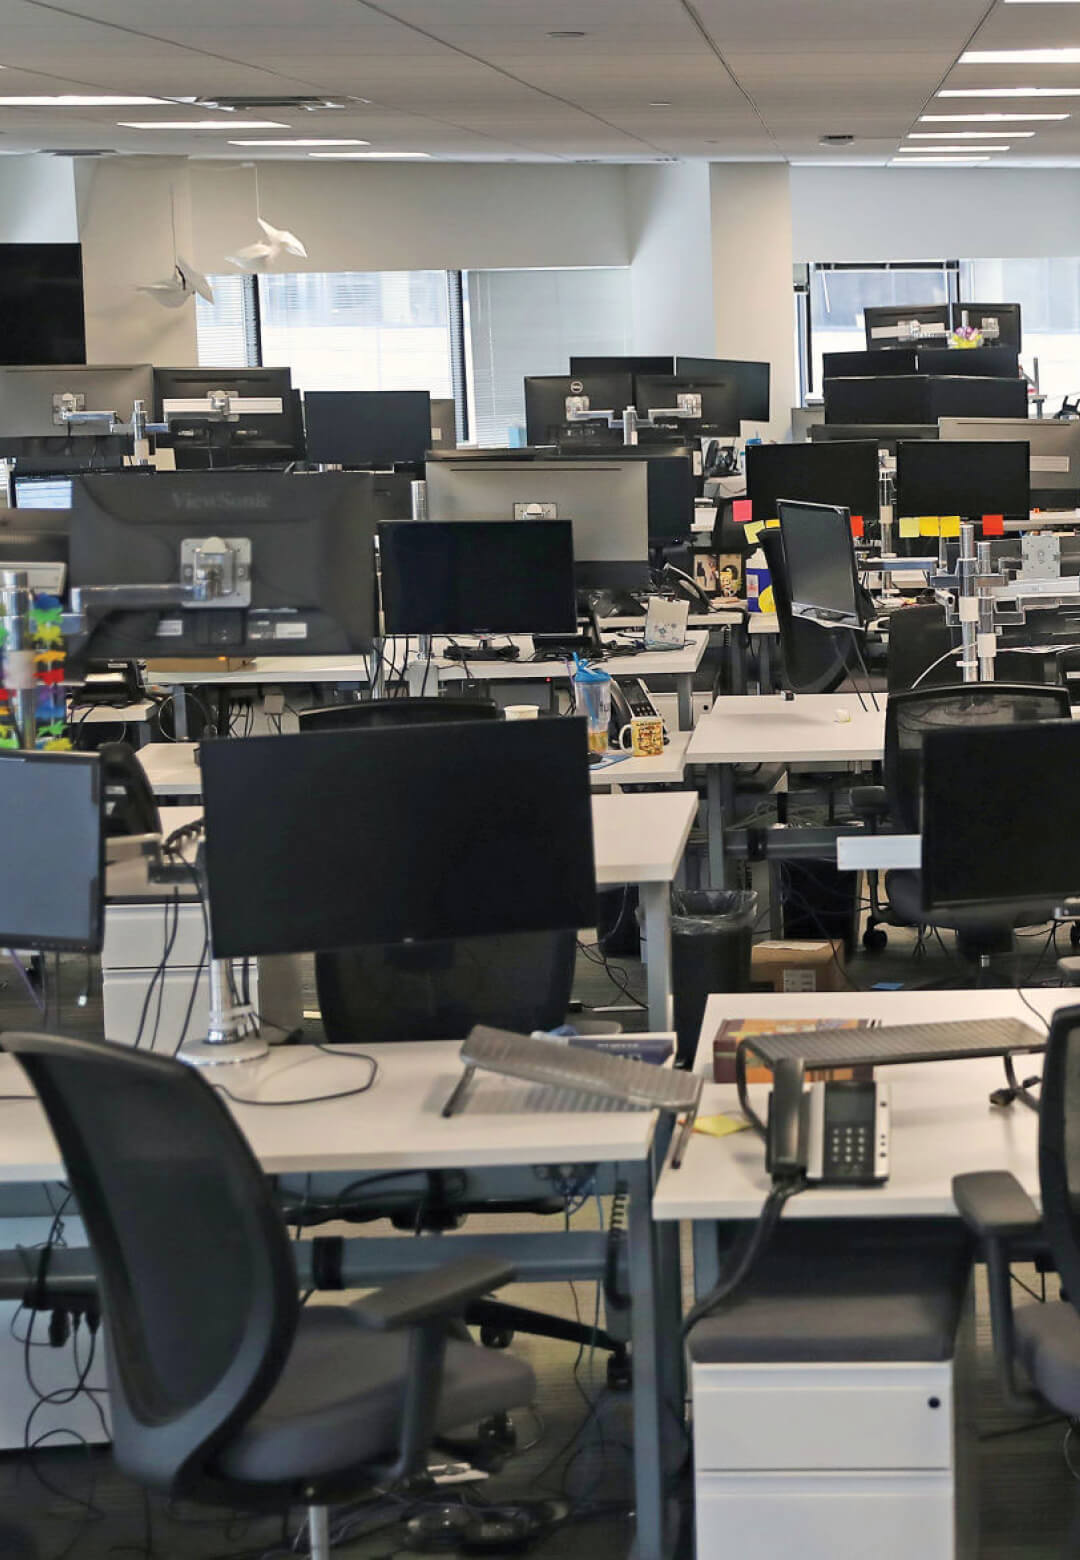 The pandemic has forced workplaces and businesses to shift online, leaving physical spaces empty | Digital Legacies: Escape | STIRworld